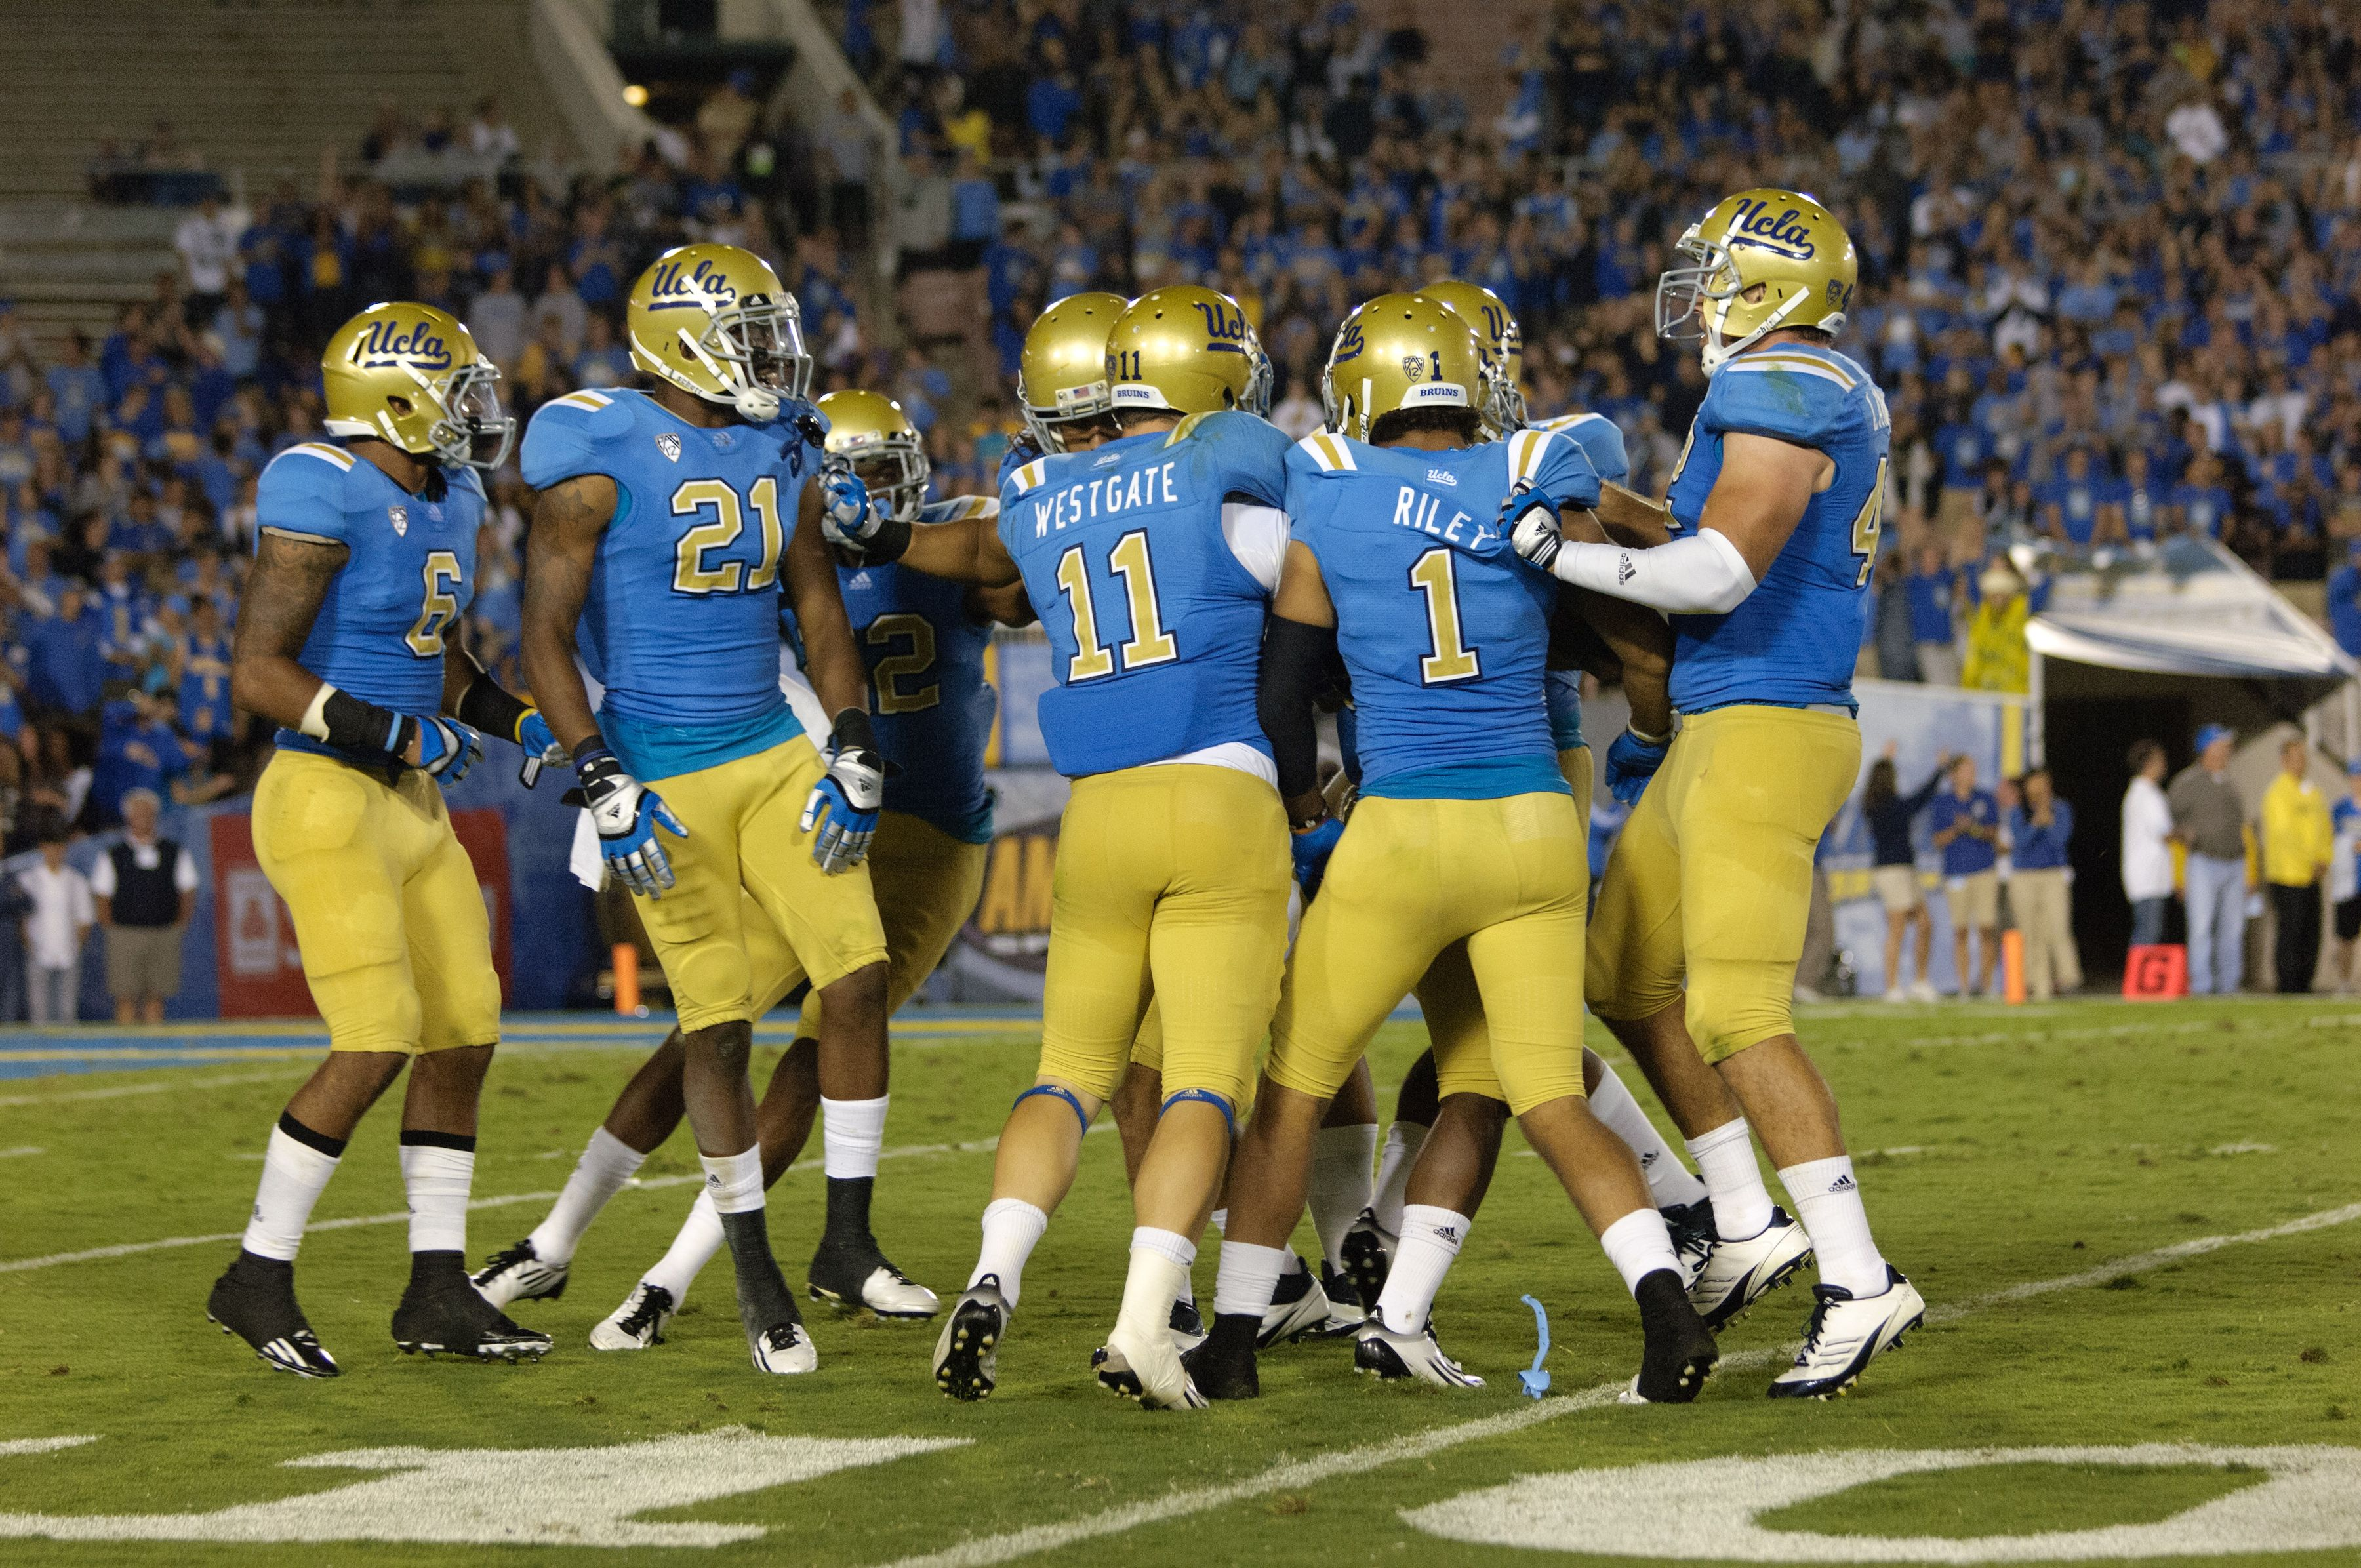 Ucla Bruins Football Ucla Bruins Football Football Ucla